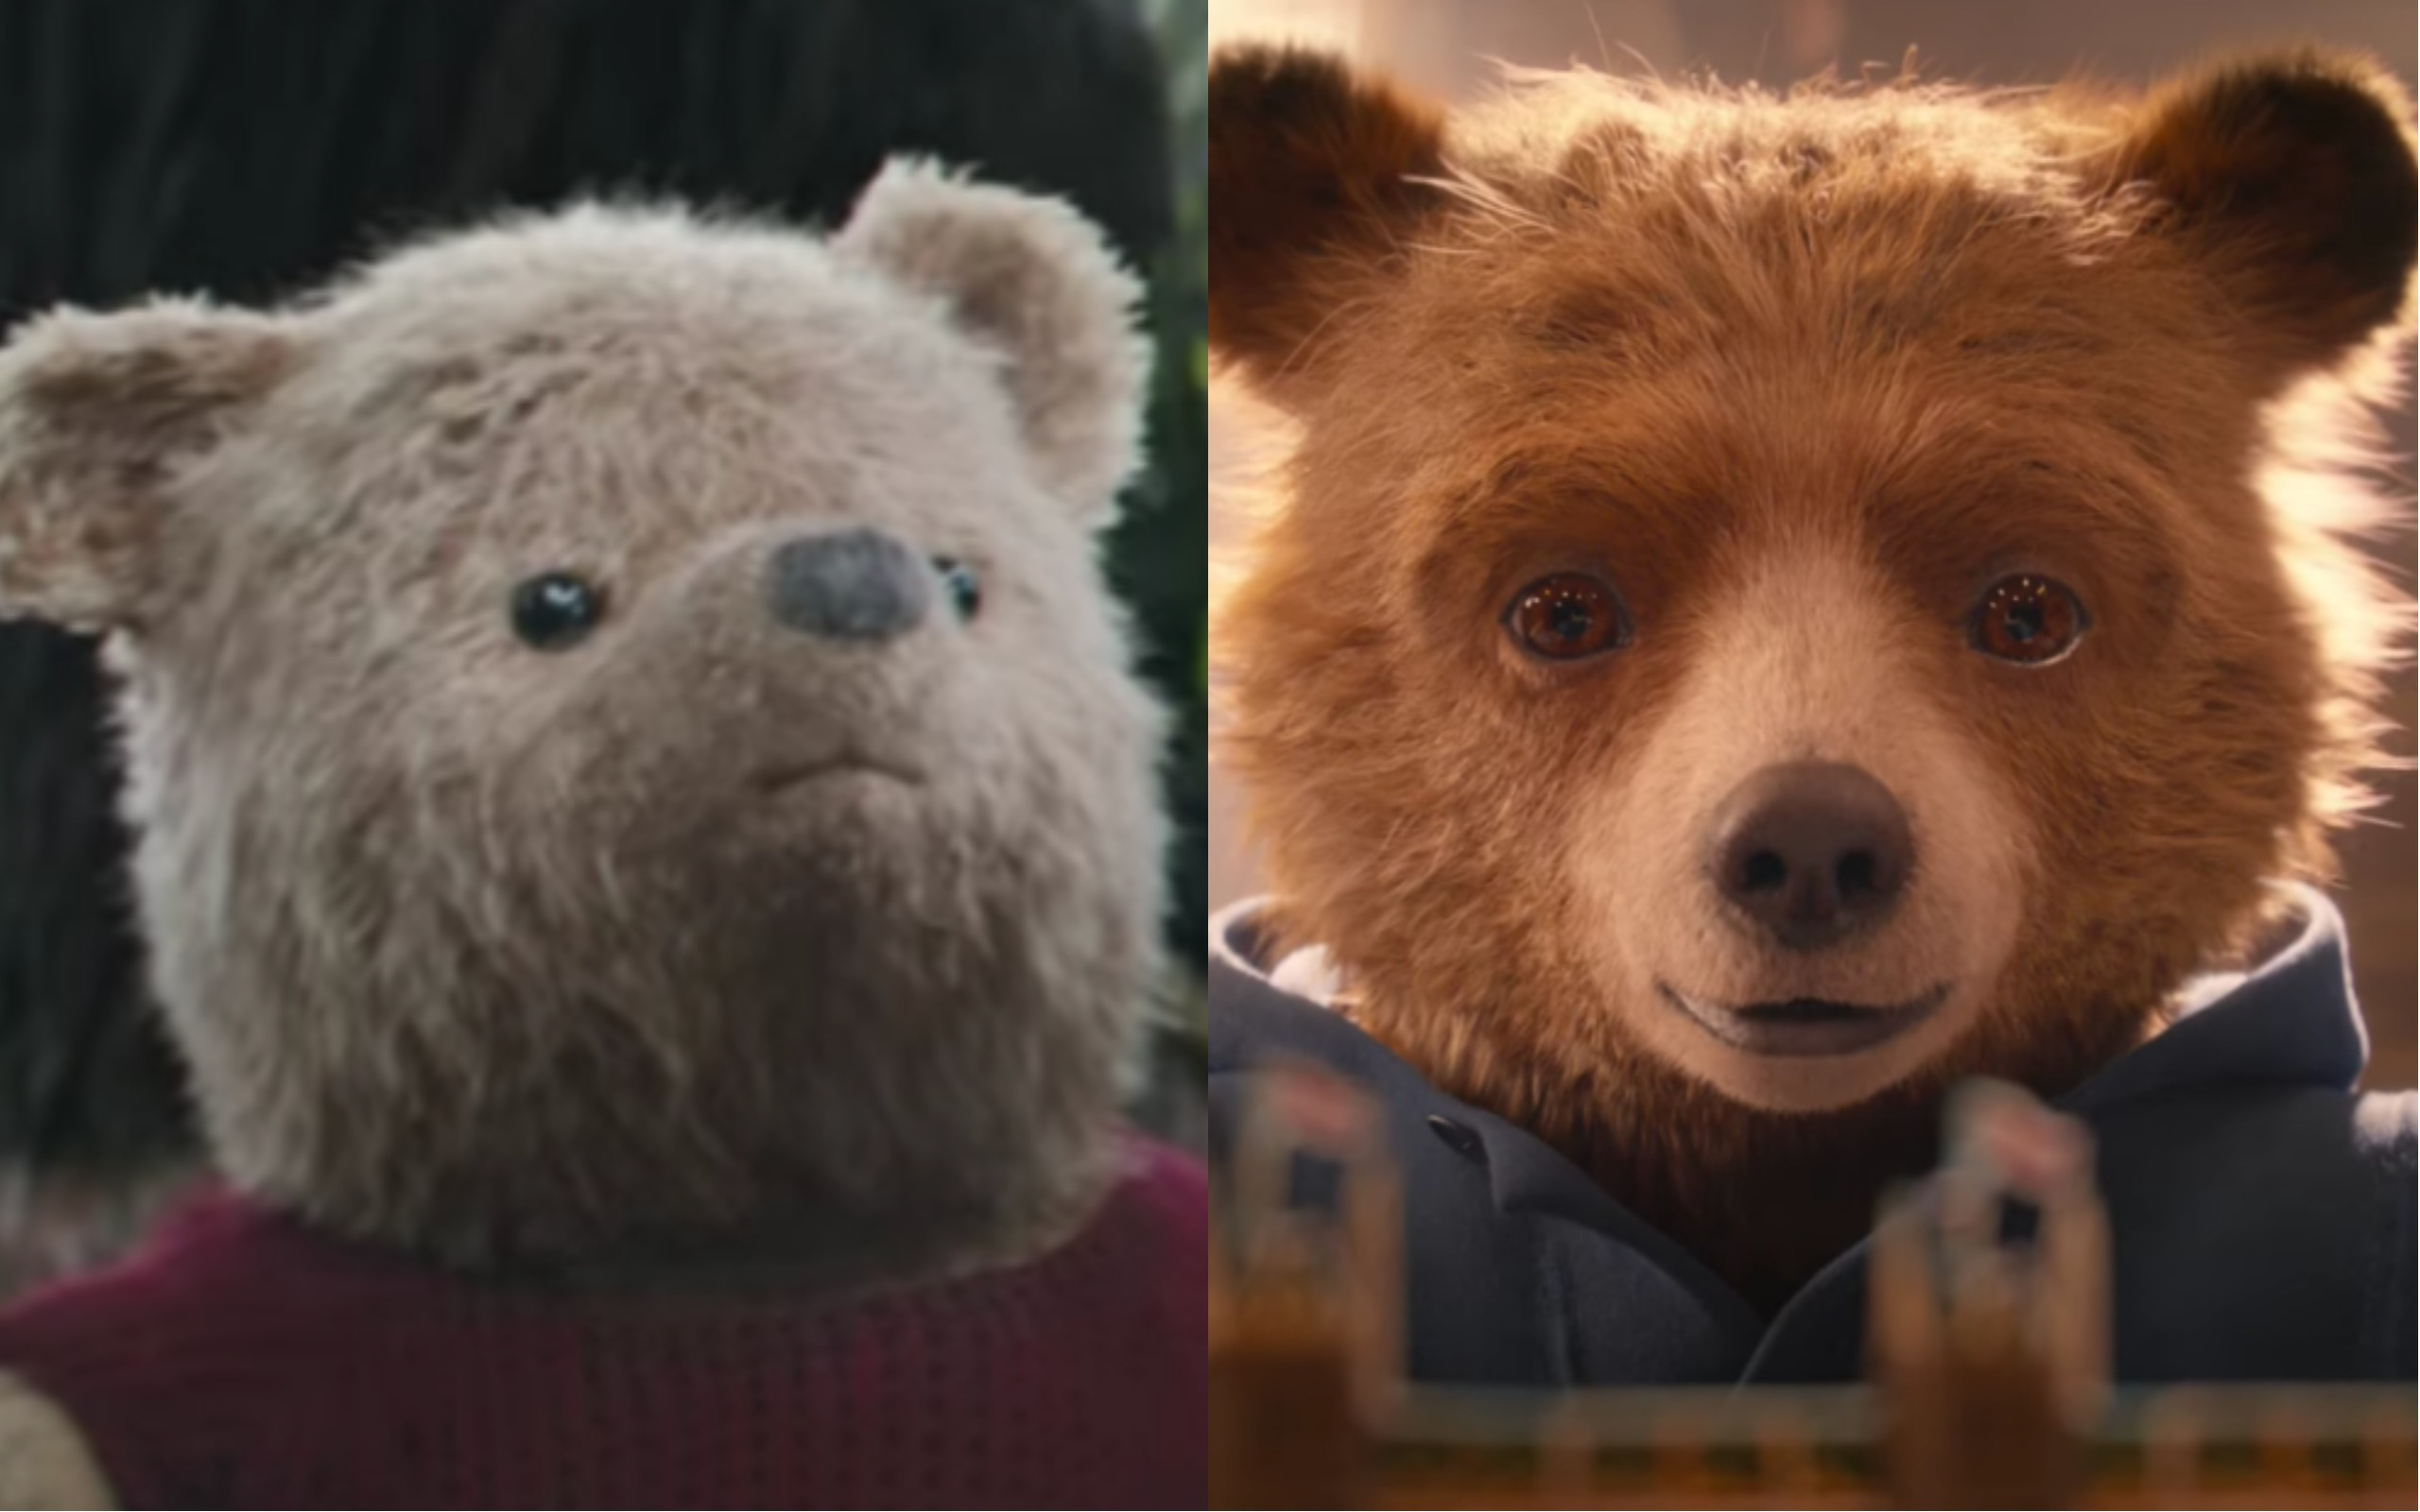 Twitter is completely divided over a raging Pooh vs. Paddington debate, and can't we all just get along